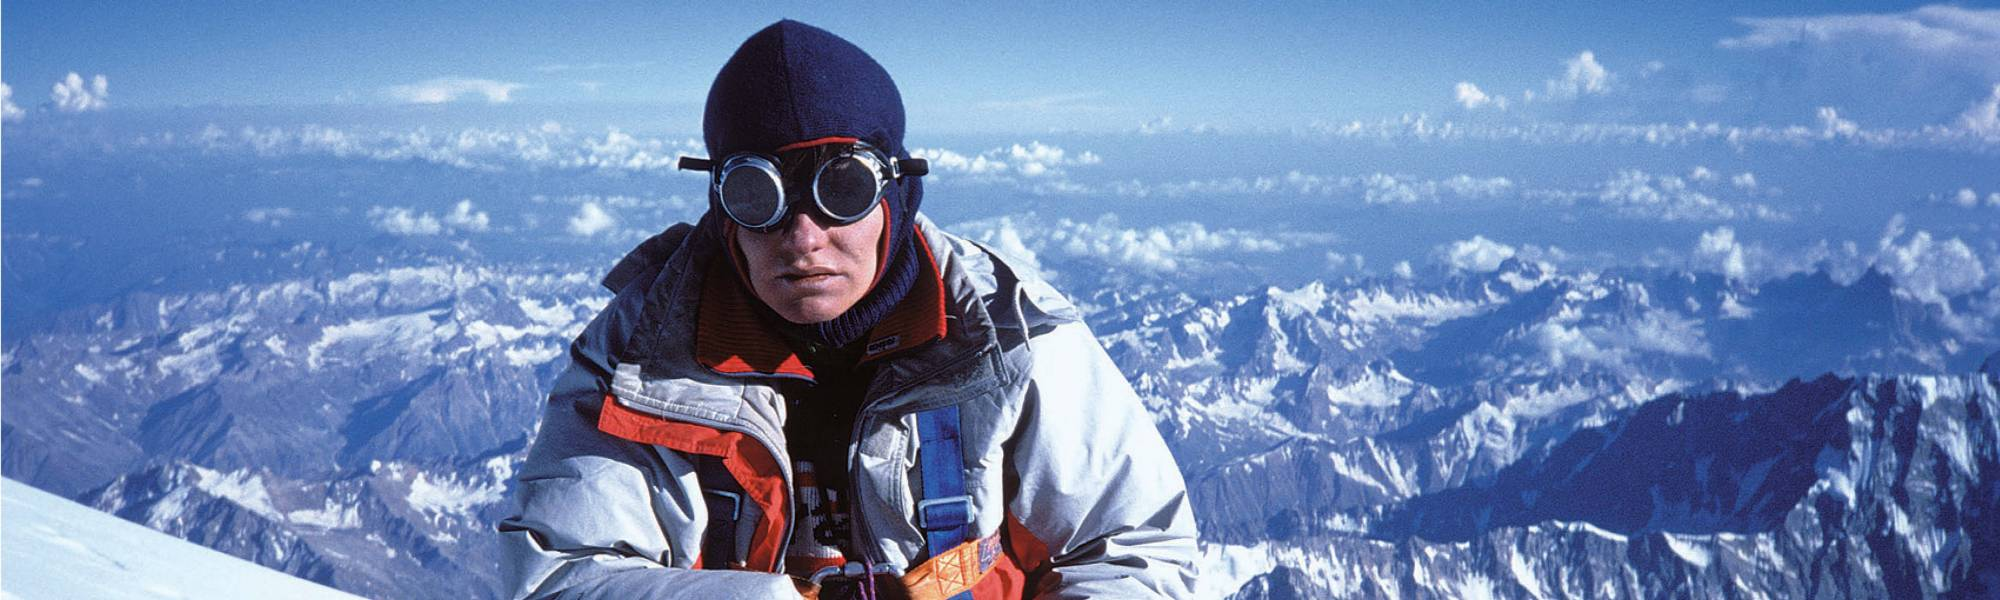 Marija Frantar on the summit of Nanga Parbat. From the book First Women Expeditions to Eight Thousand Meter Peaks (Didakta 2019).